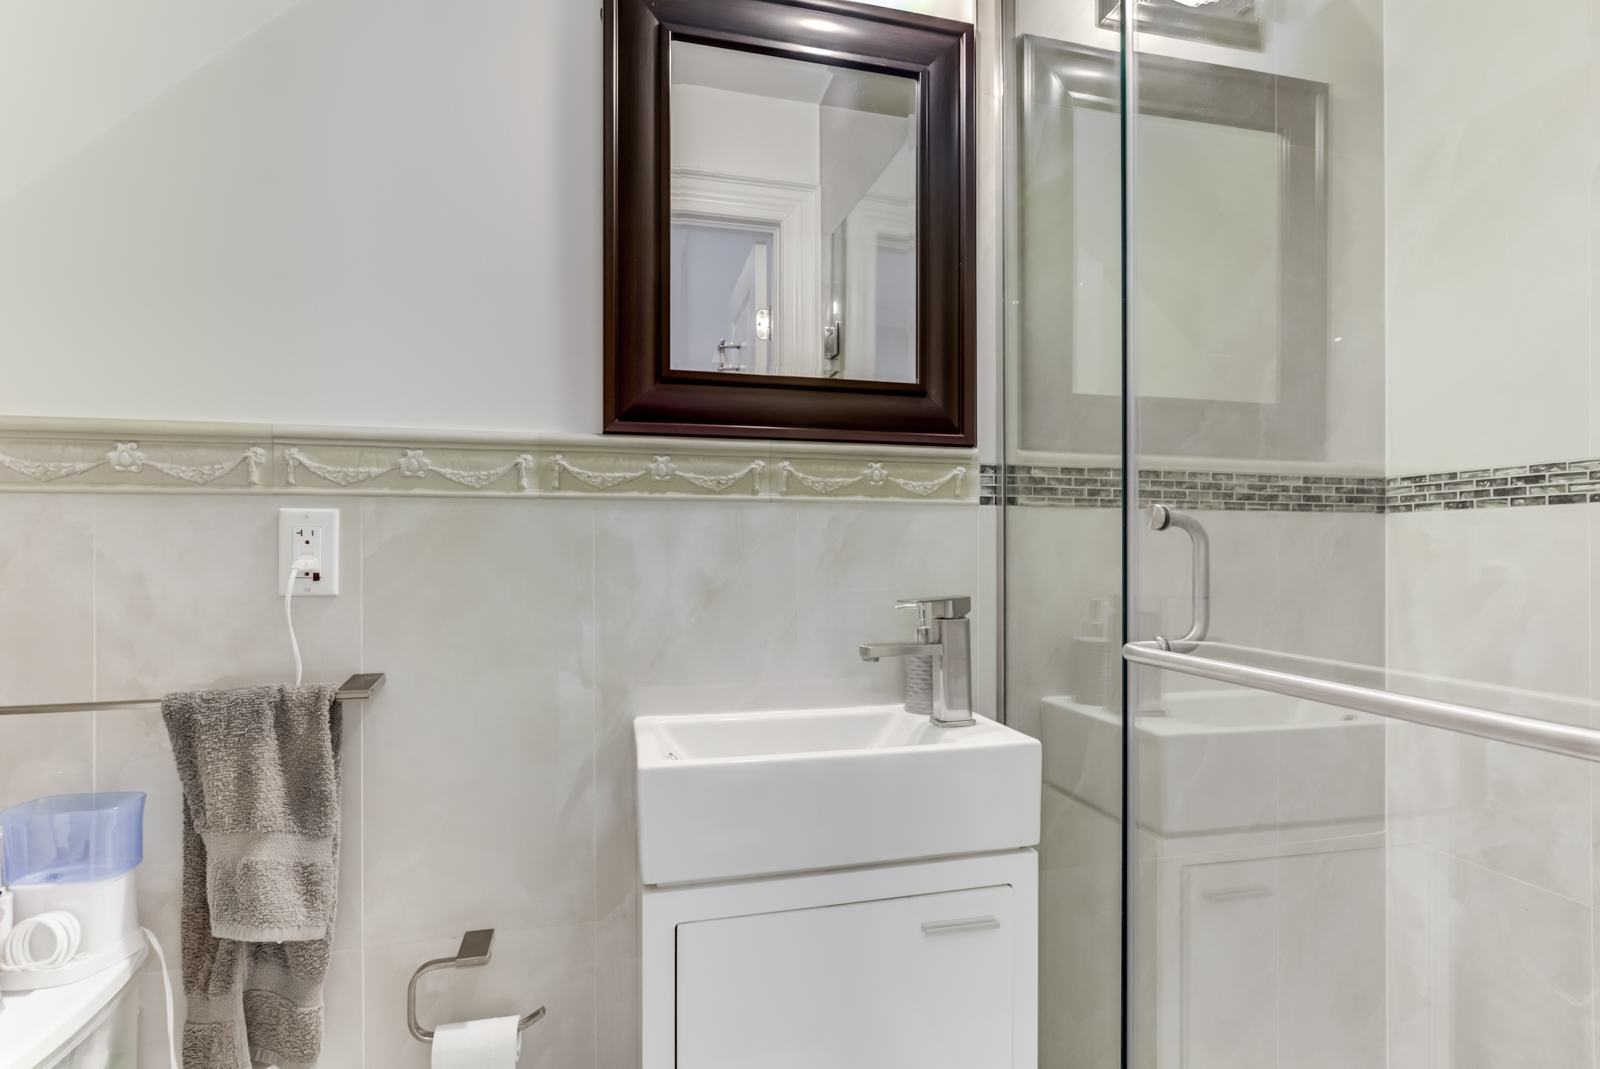 Small washroom with glass walk-in shower, square sink and white walls.